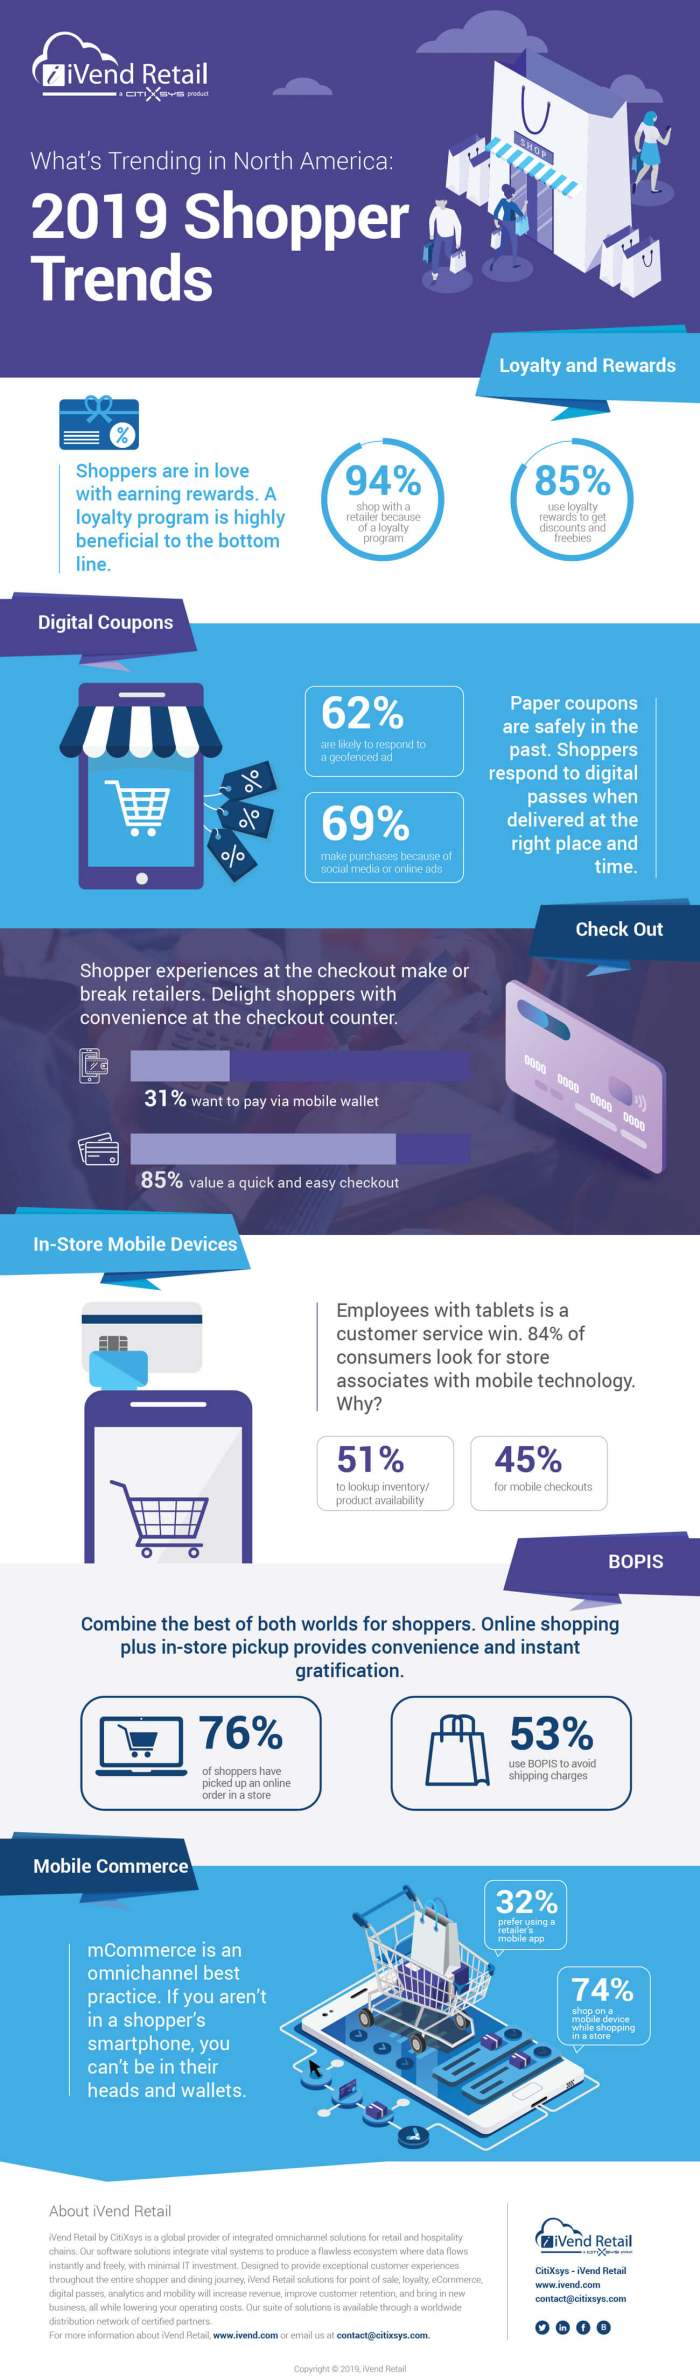 2019 Global Shopper Trends - North America - Infographic